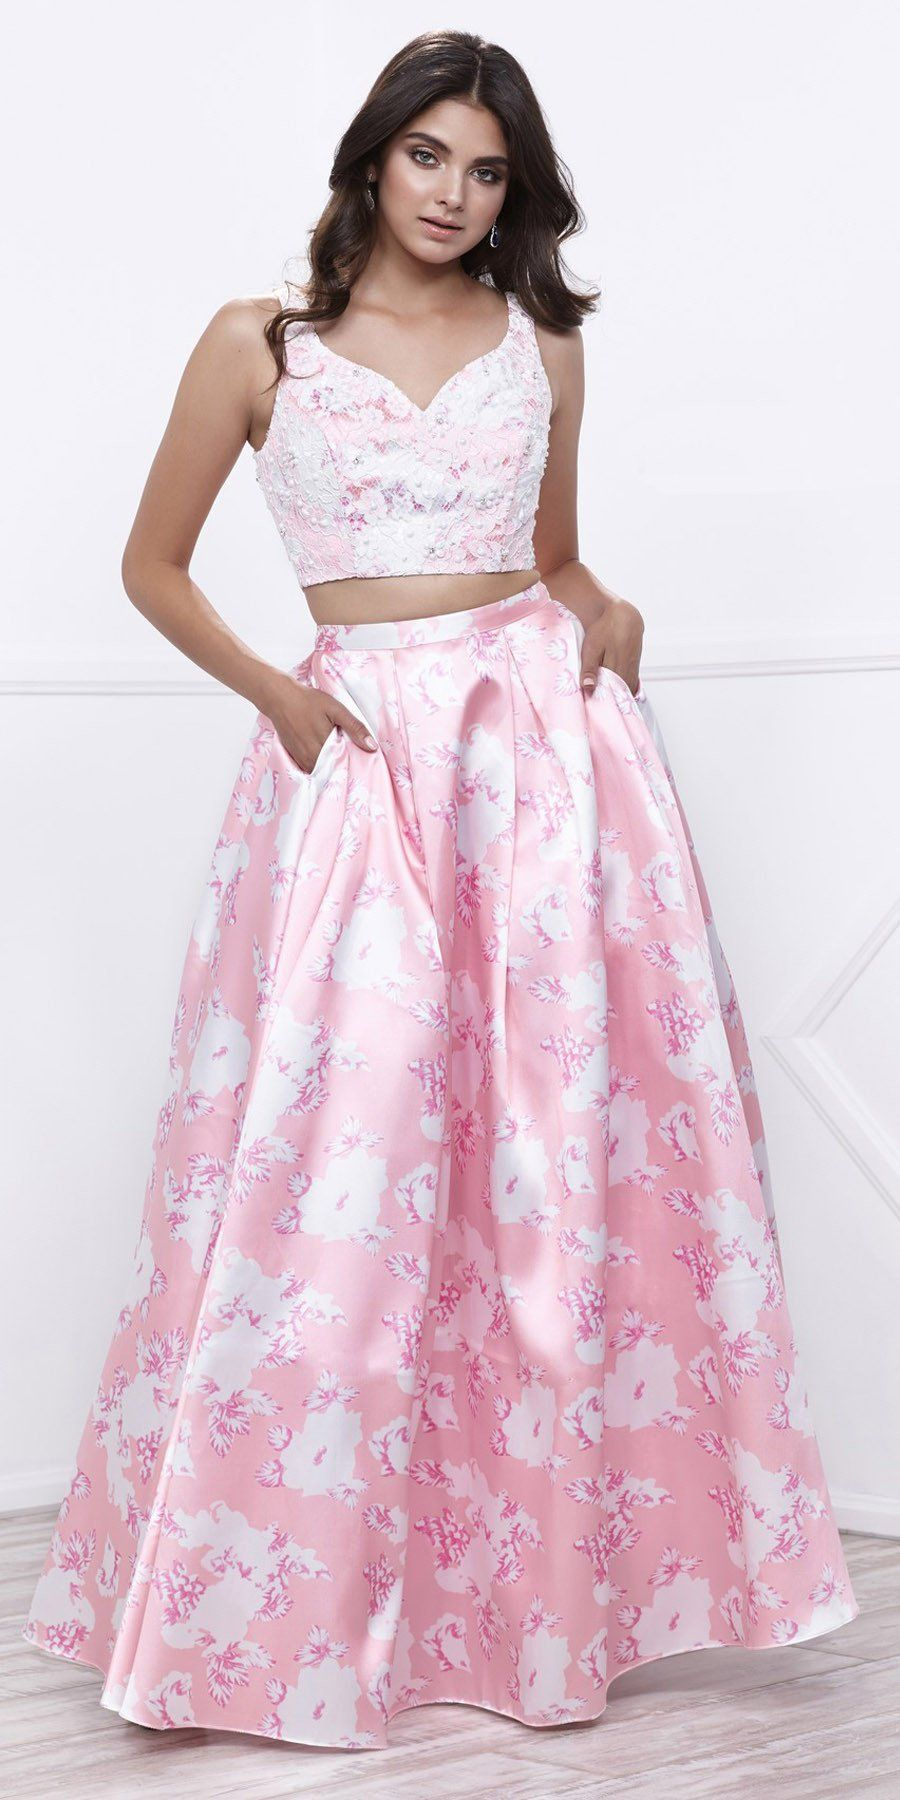 Lace top satin floral printed skirt twopiece prom dress long pink